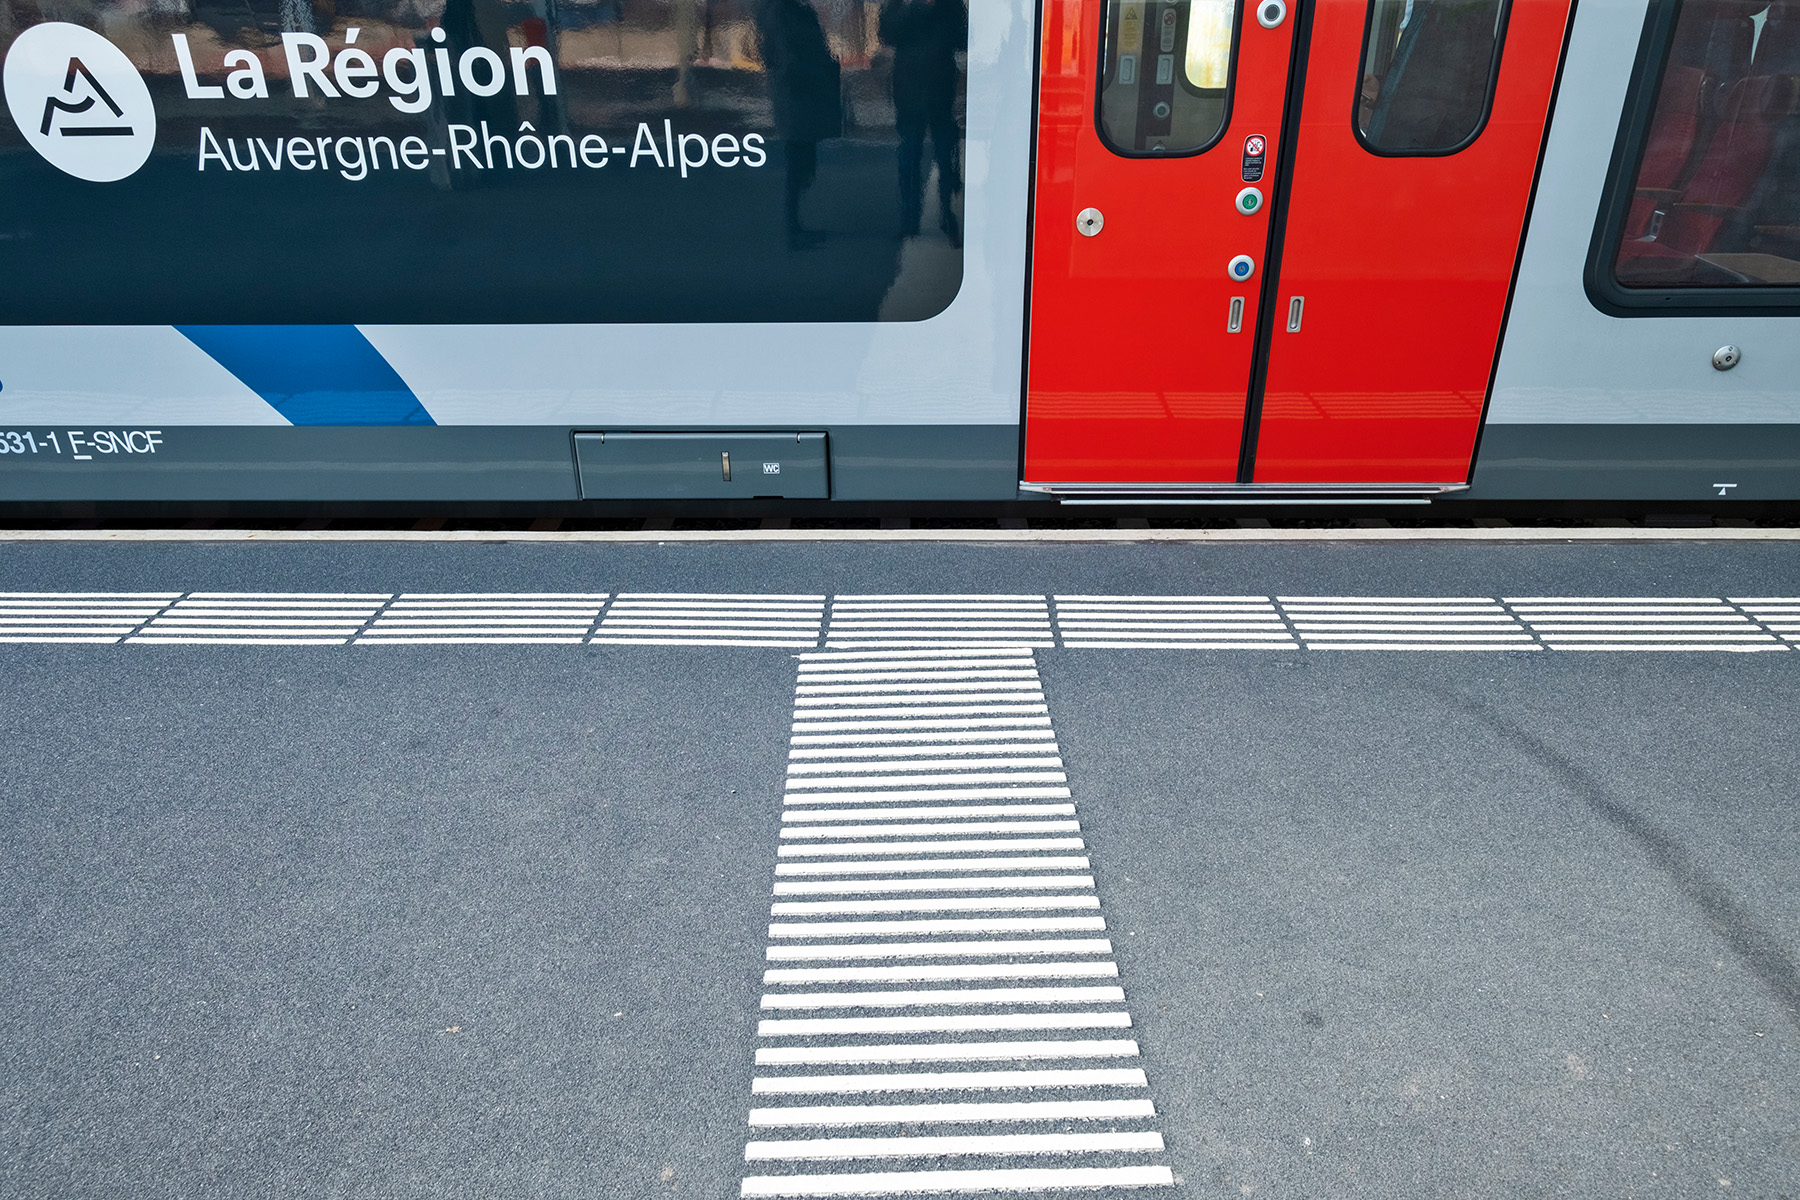 Tactile paving at a train station in Geneva